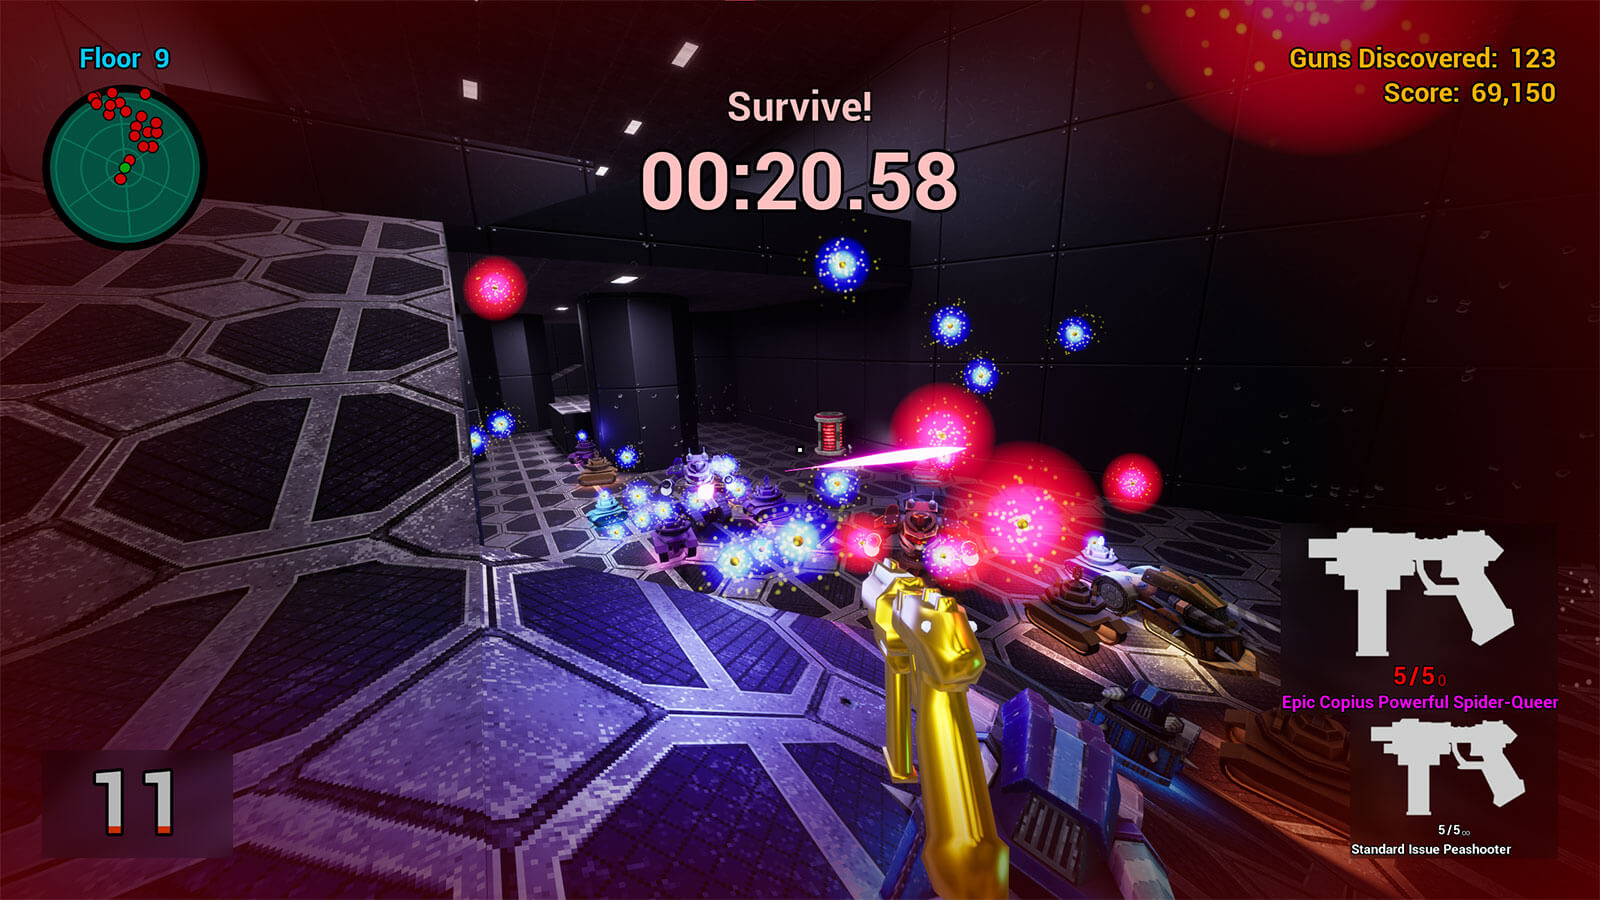 Enemy robots fire projectiles at the player